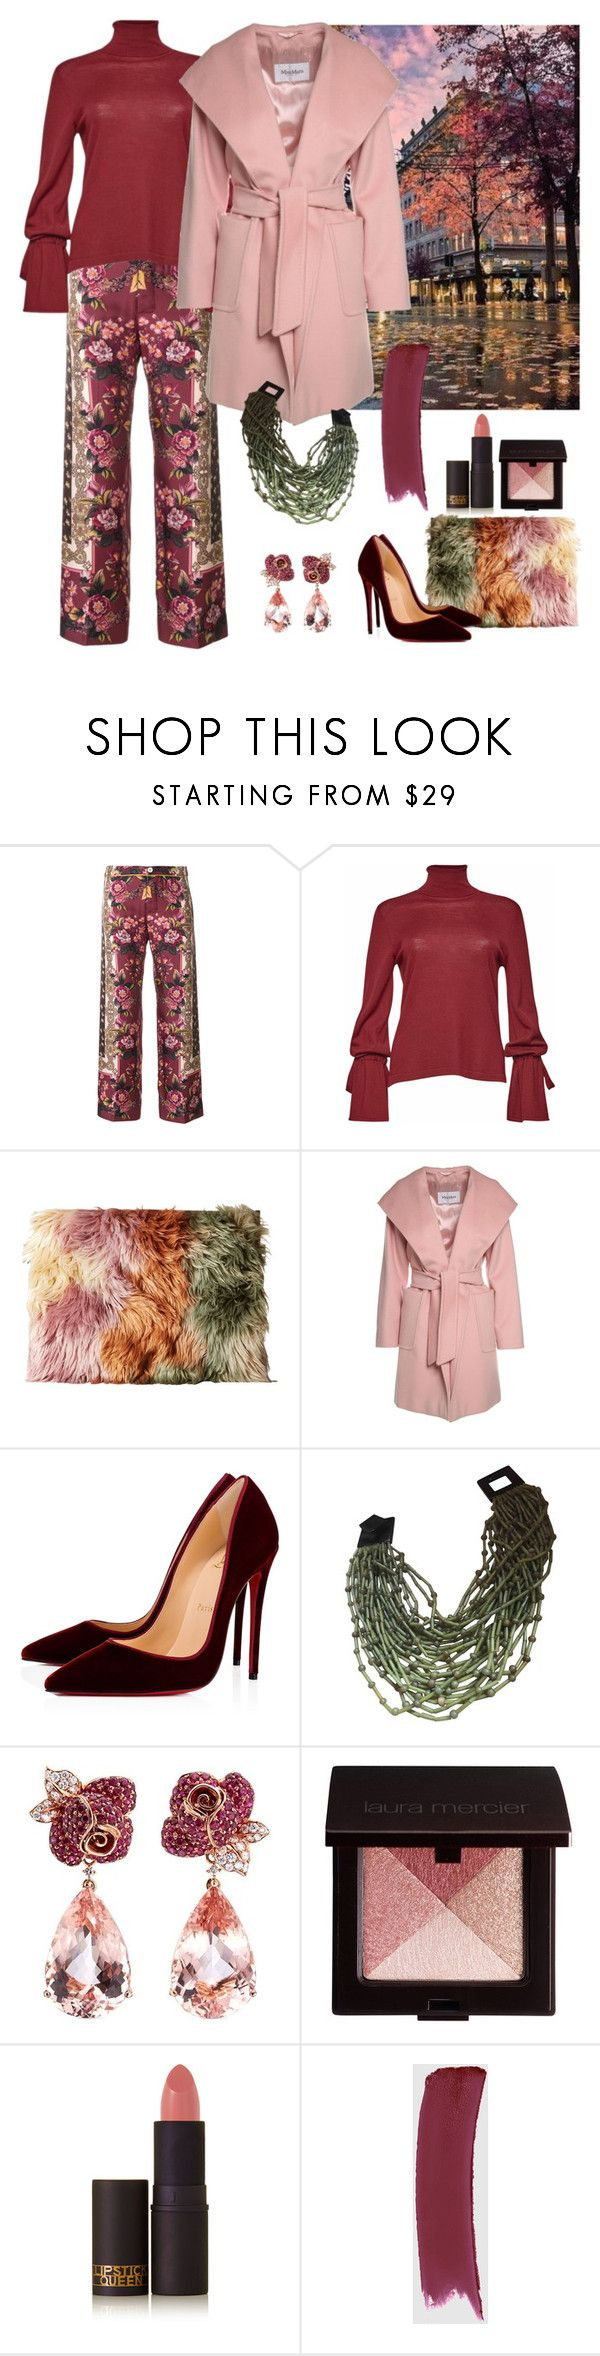 """""""AUTUMN COAT"""" by molly-072 ❤ liked on Polyvore featuring F.R.S For Restless Sleepers, MM6 Maison Margiela, MaxMara, Christian Louboutin, Monies, Anyallerie, Laura Mercier, Lipstick Queen and Gucci"""